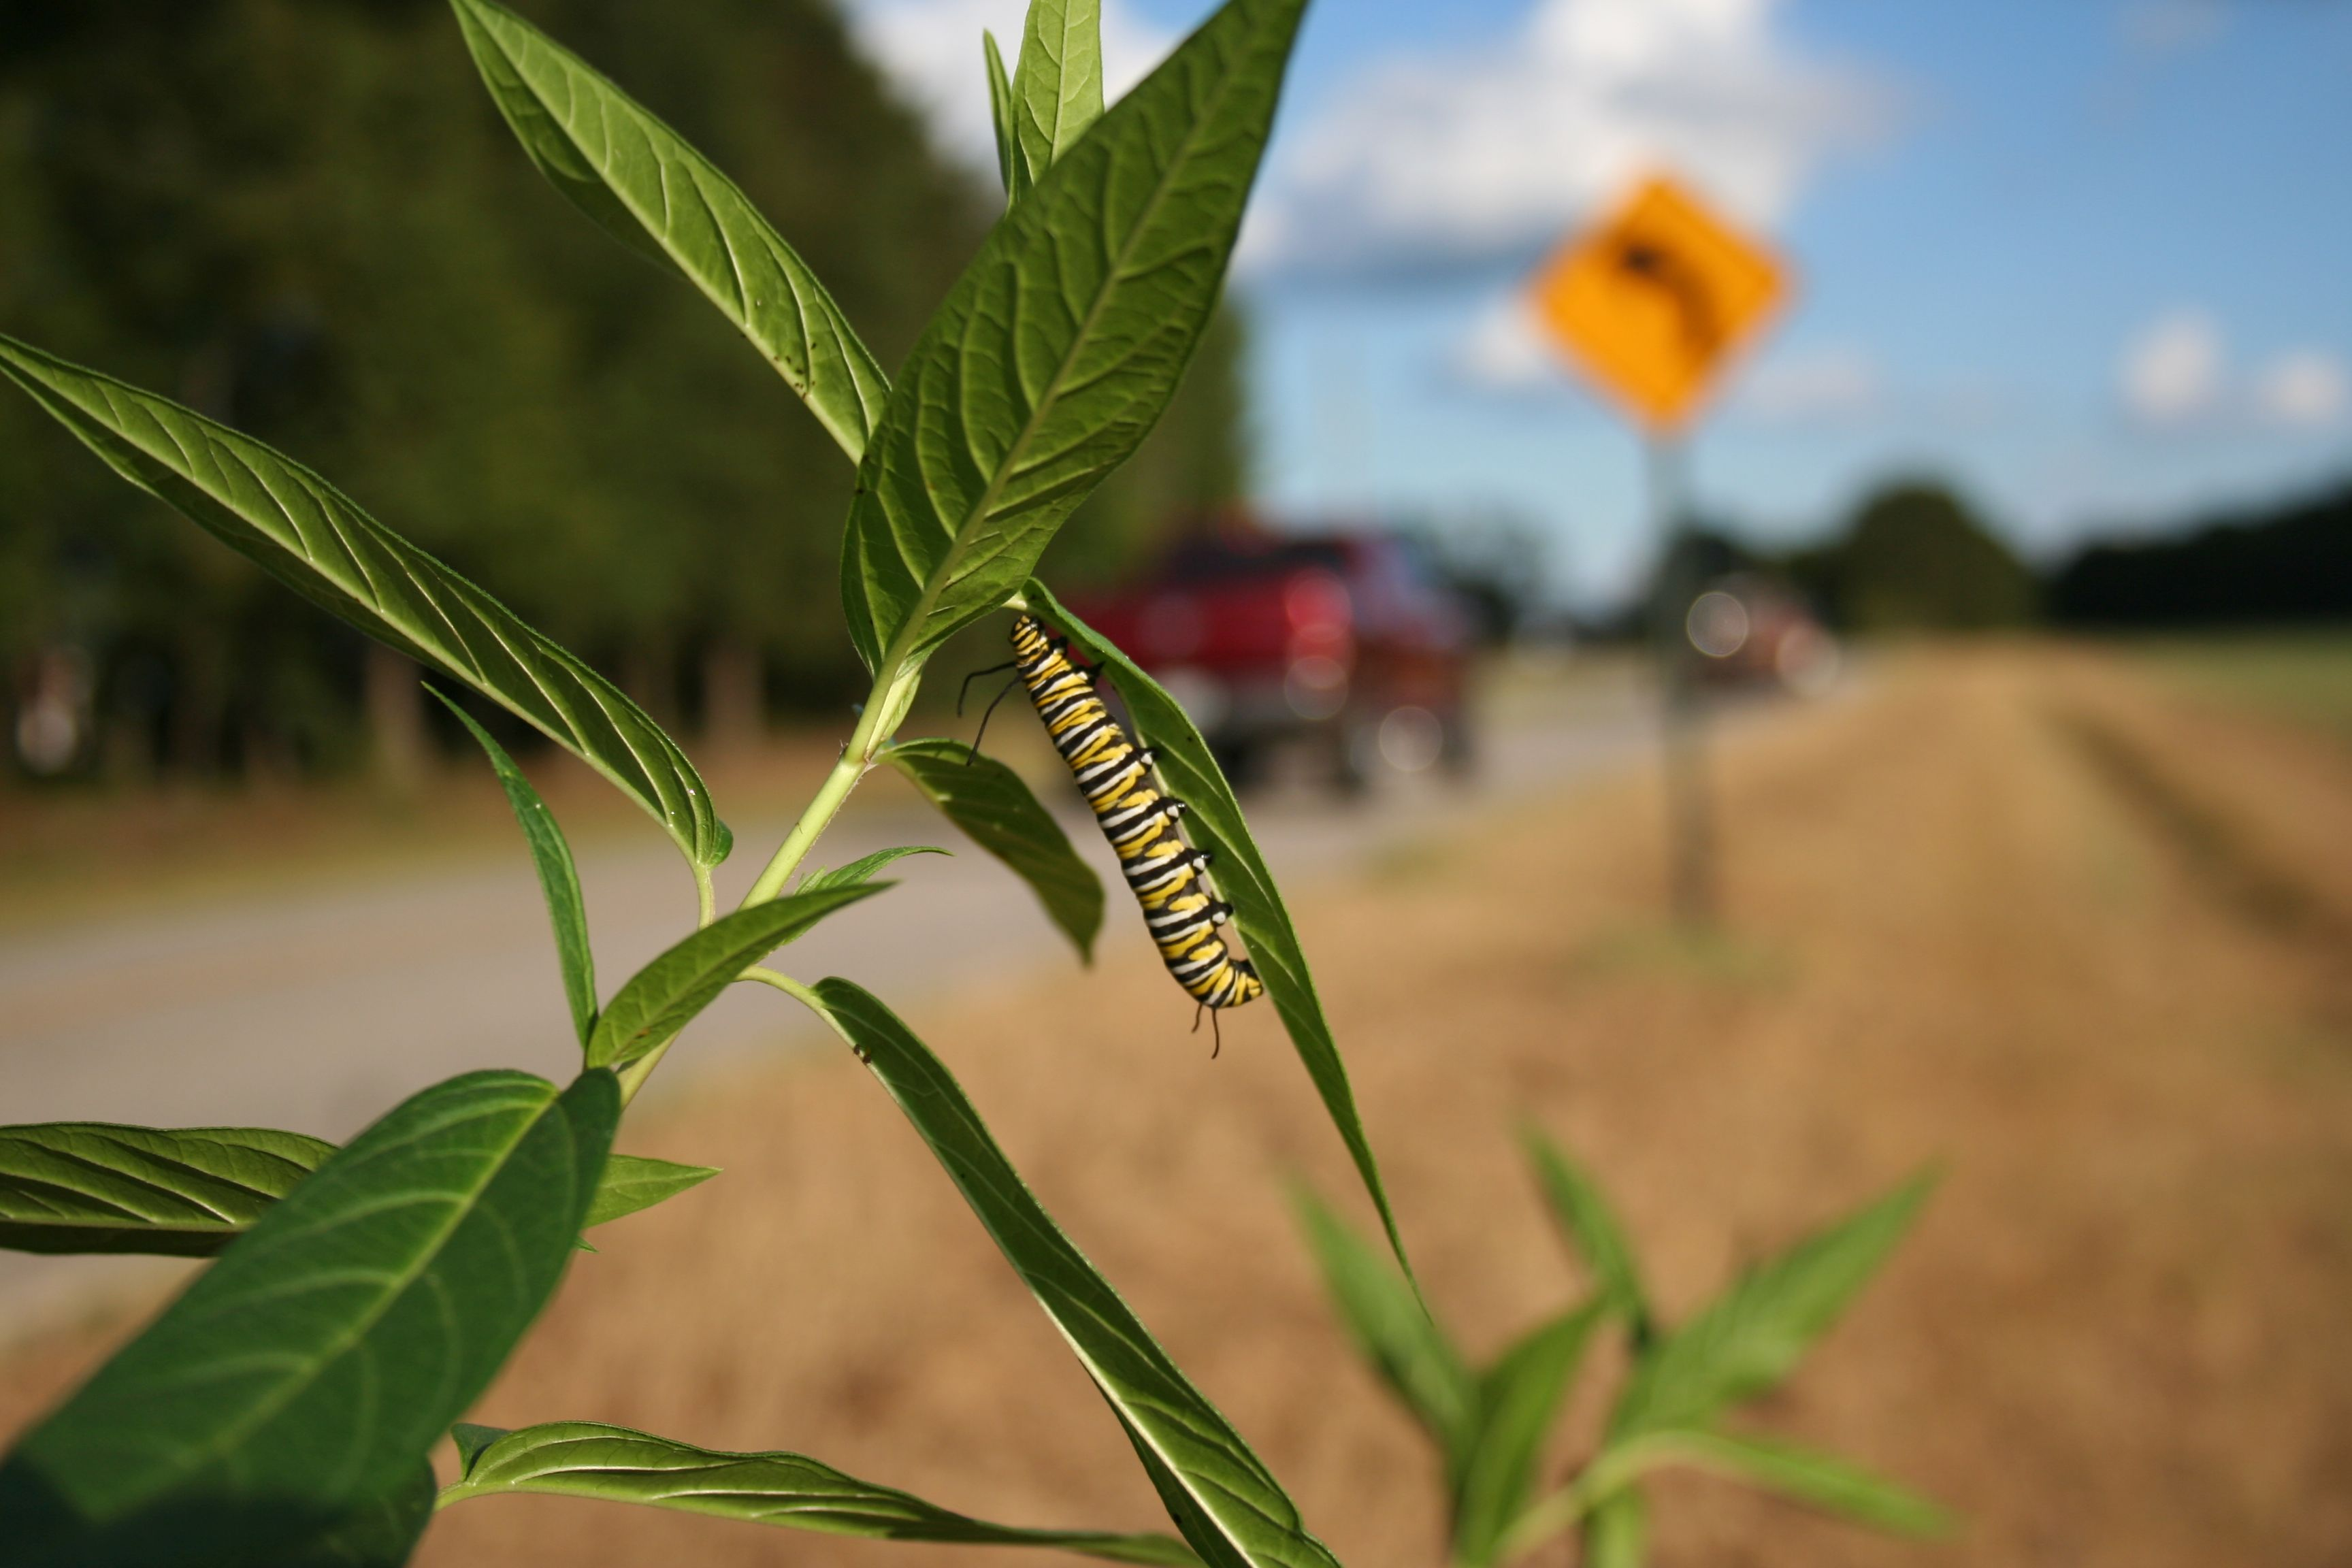 Caterpillar 'road rage' could affect migration: Highway noise can lead to stress for monarch butterfly caterpillars